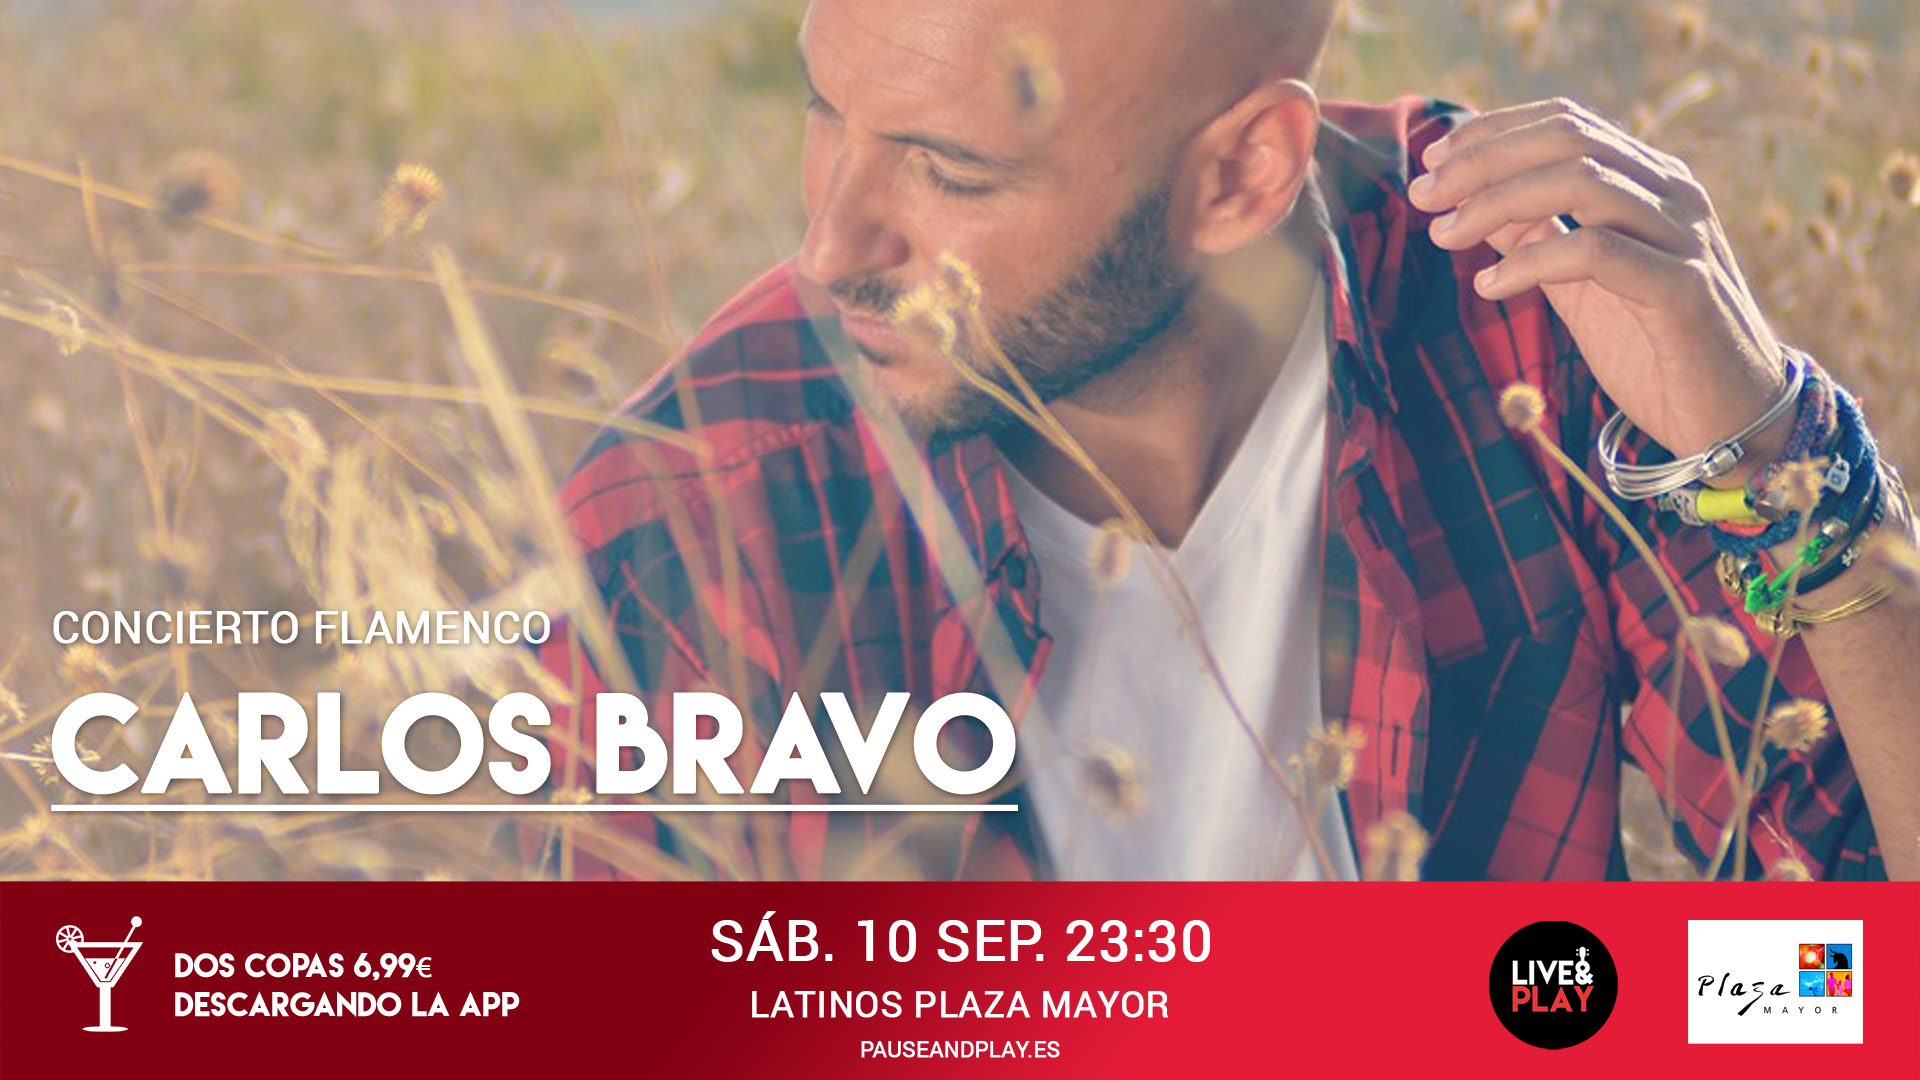 LATINOS PLAZA MAYOR